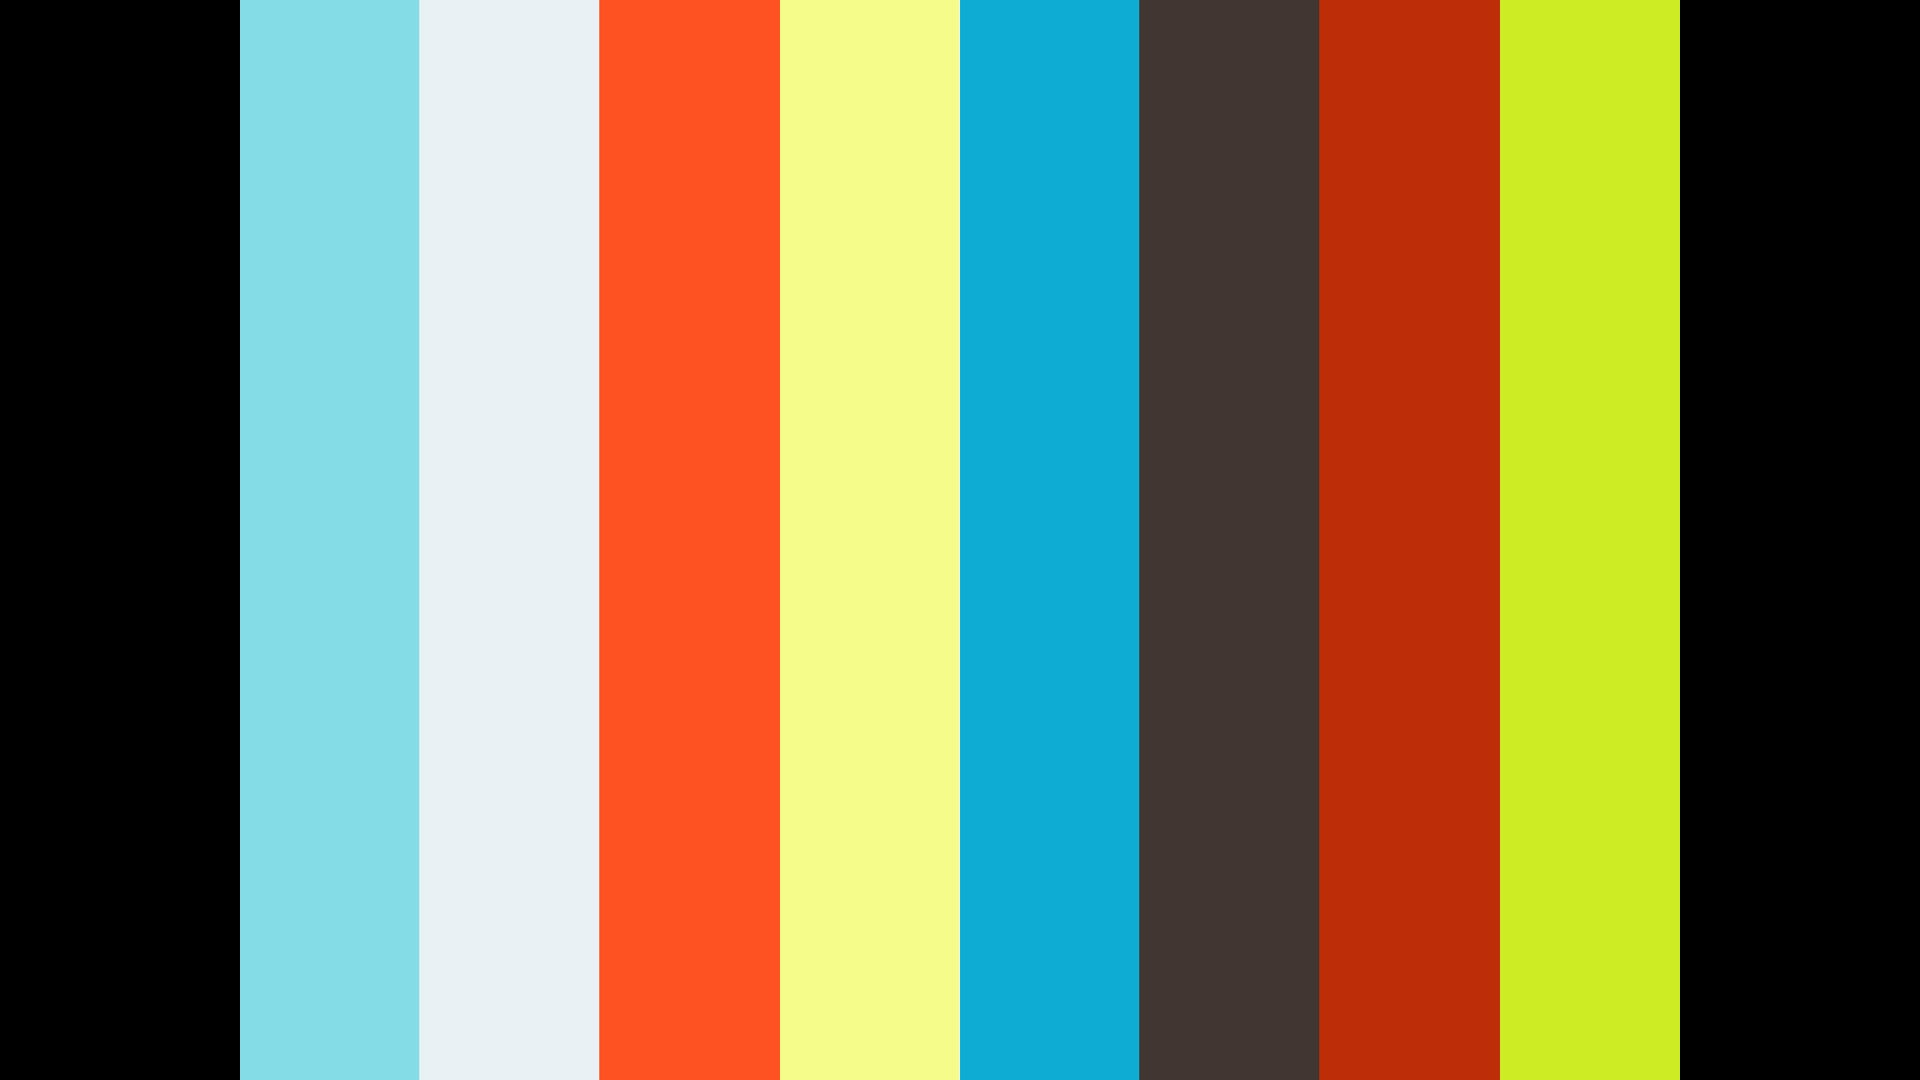 Frank Boudon, Best High School PSA Winner